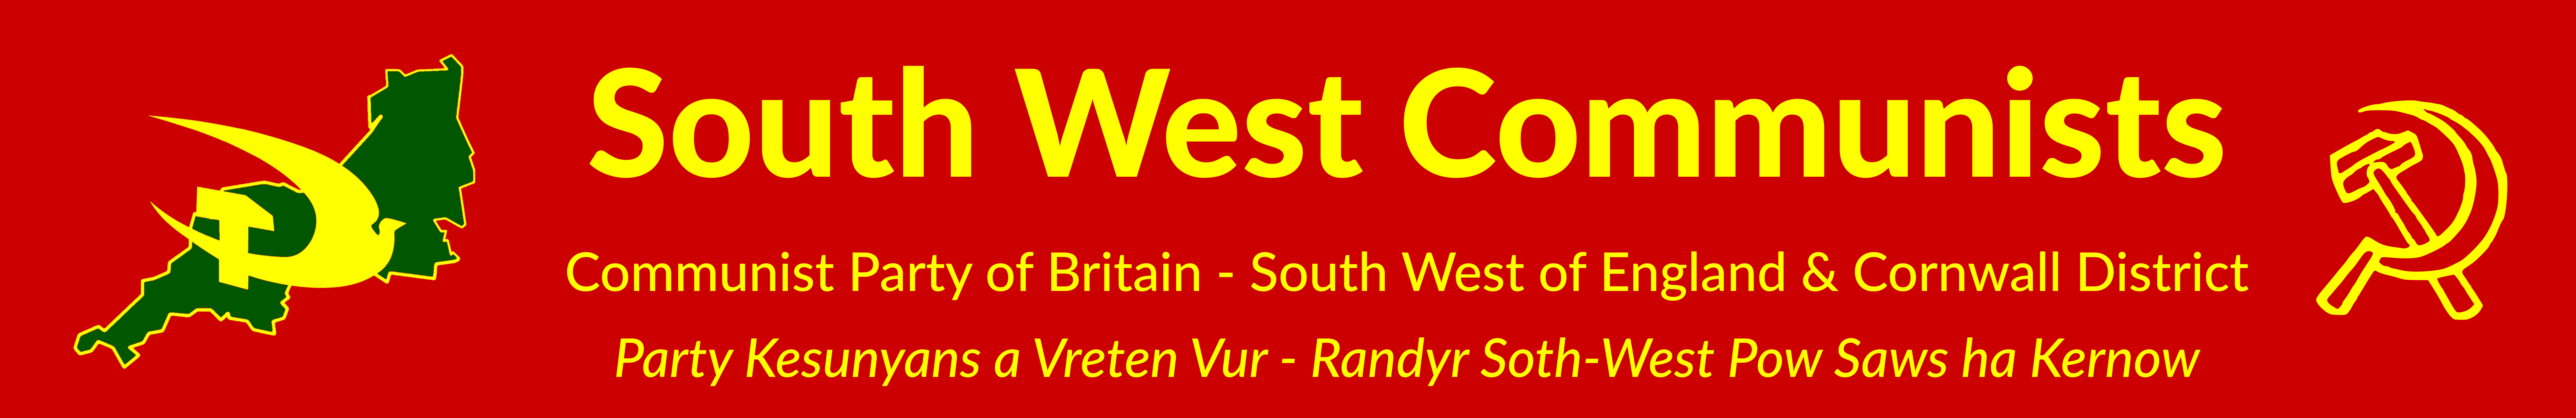 South West Communists